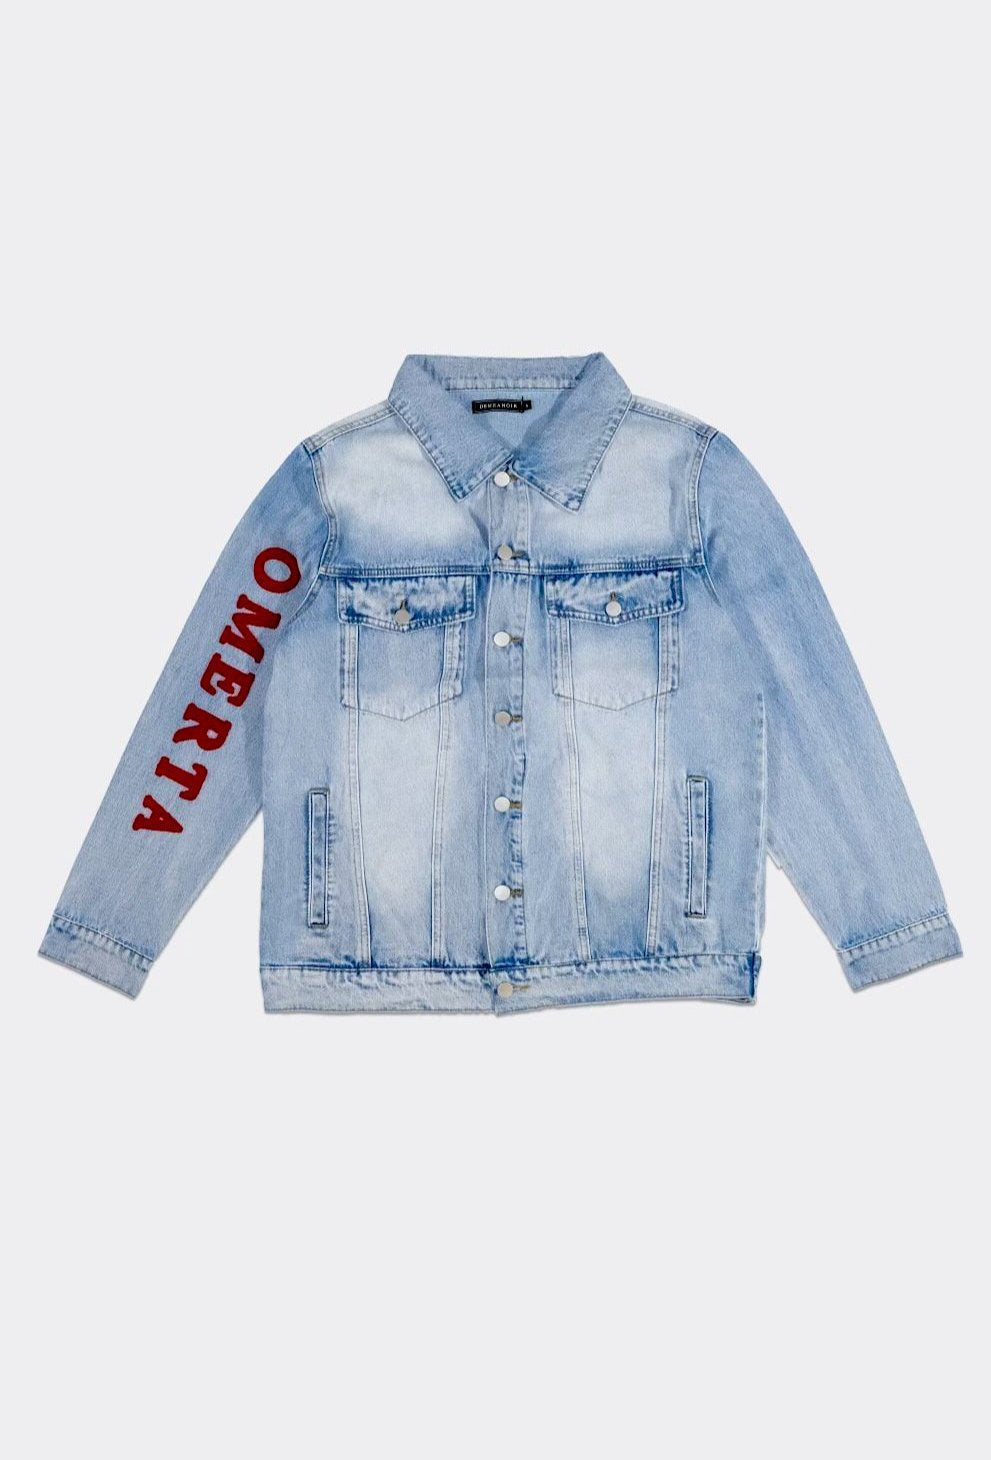 DEMEANOIR - OMERTA DENIM JACKET